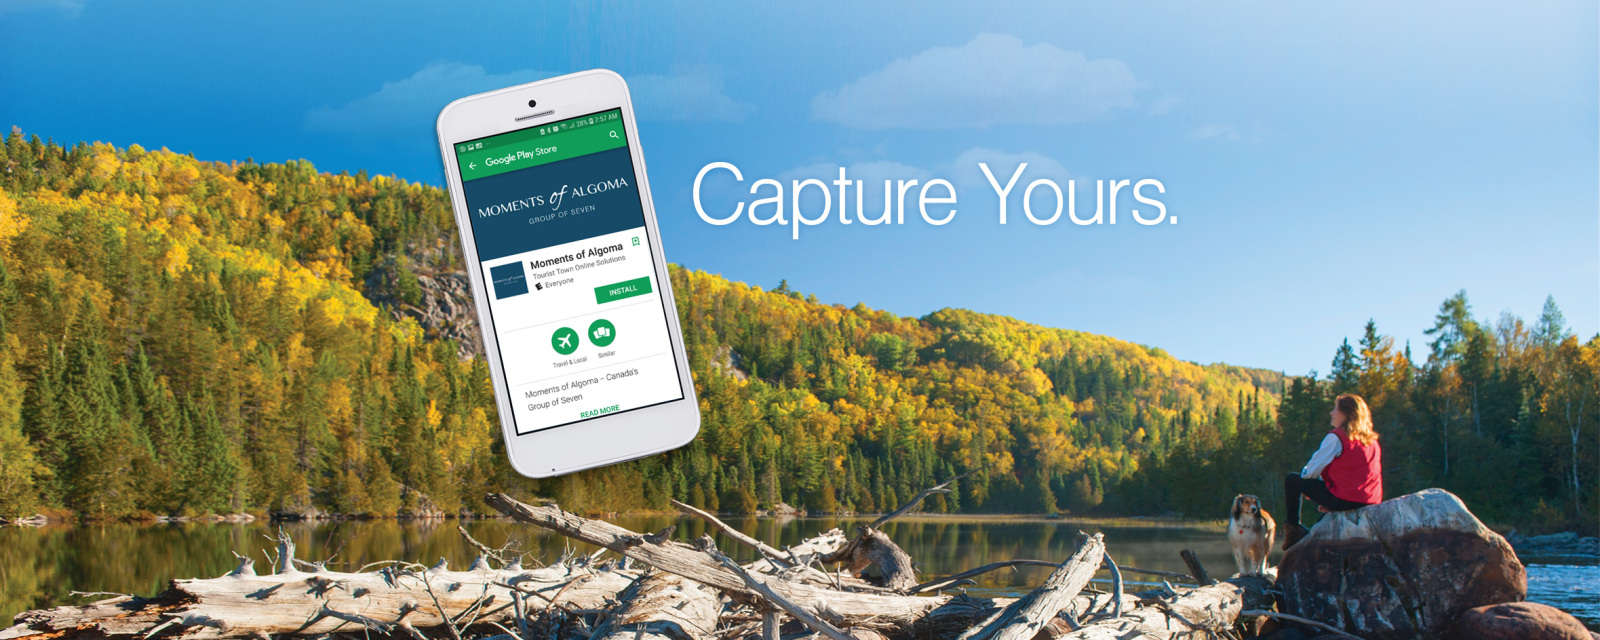 An image of a mobile phone over top of a scenic image of a woman and dog sitting on a rock overlooking a lake with fall foilage.